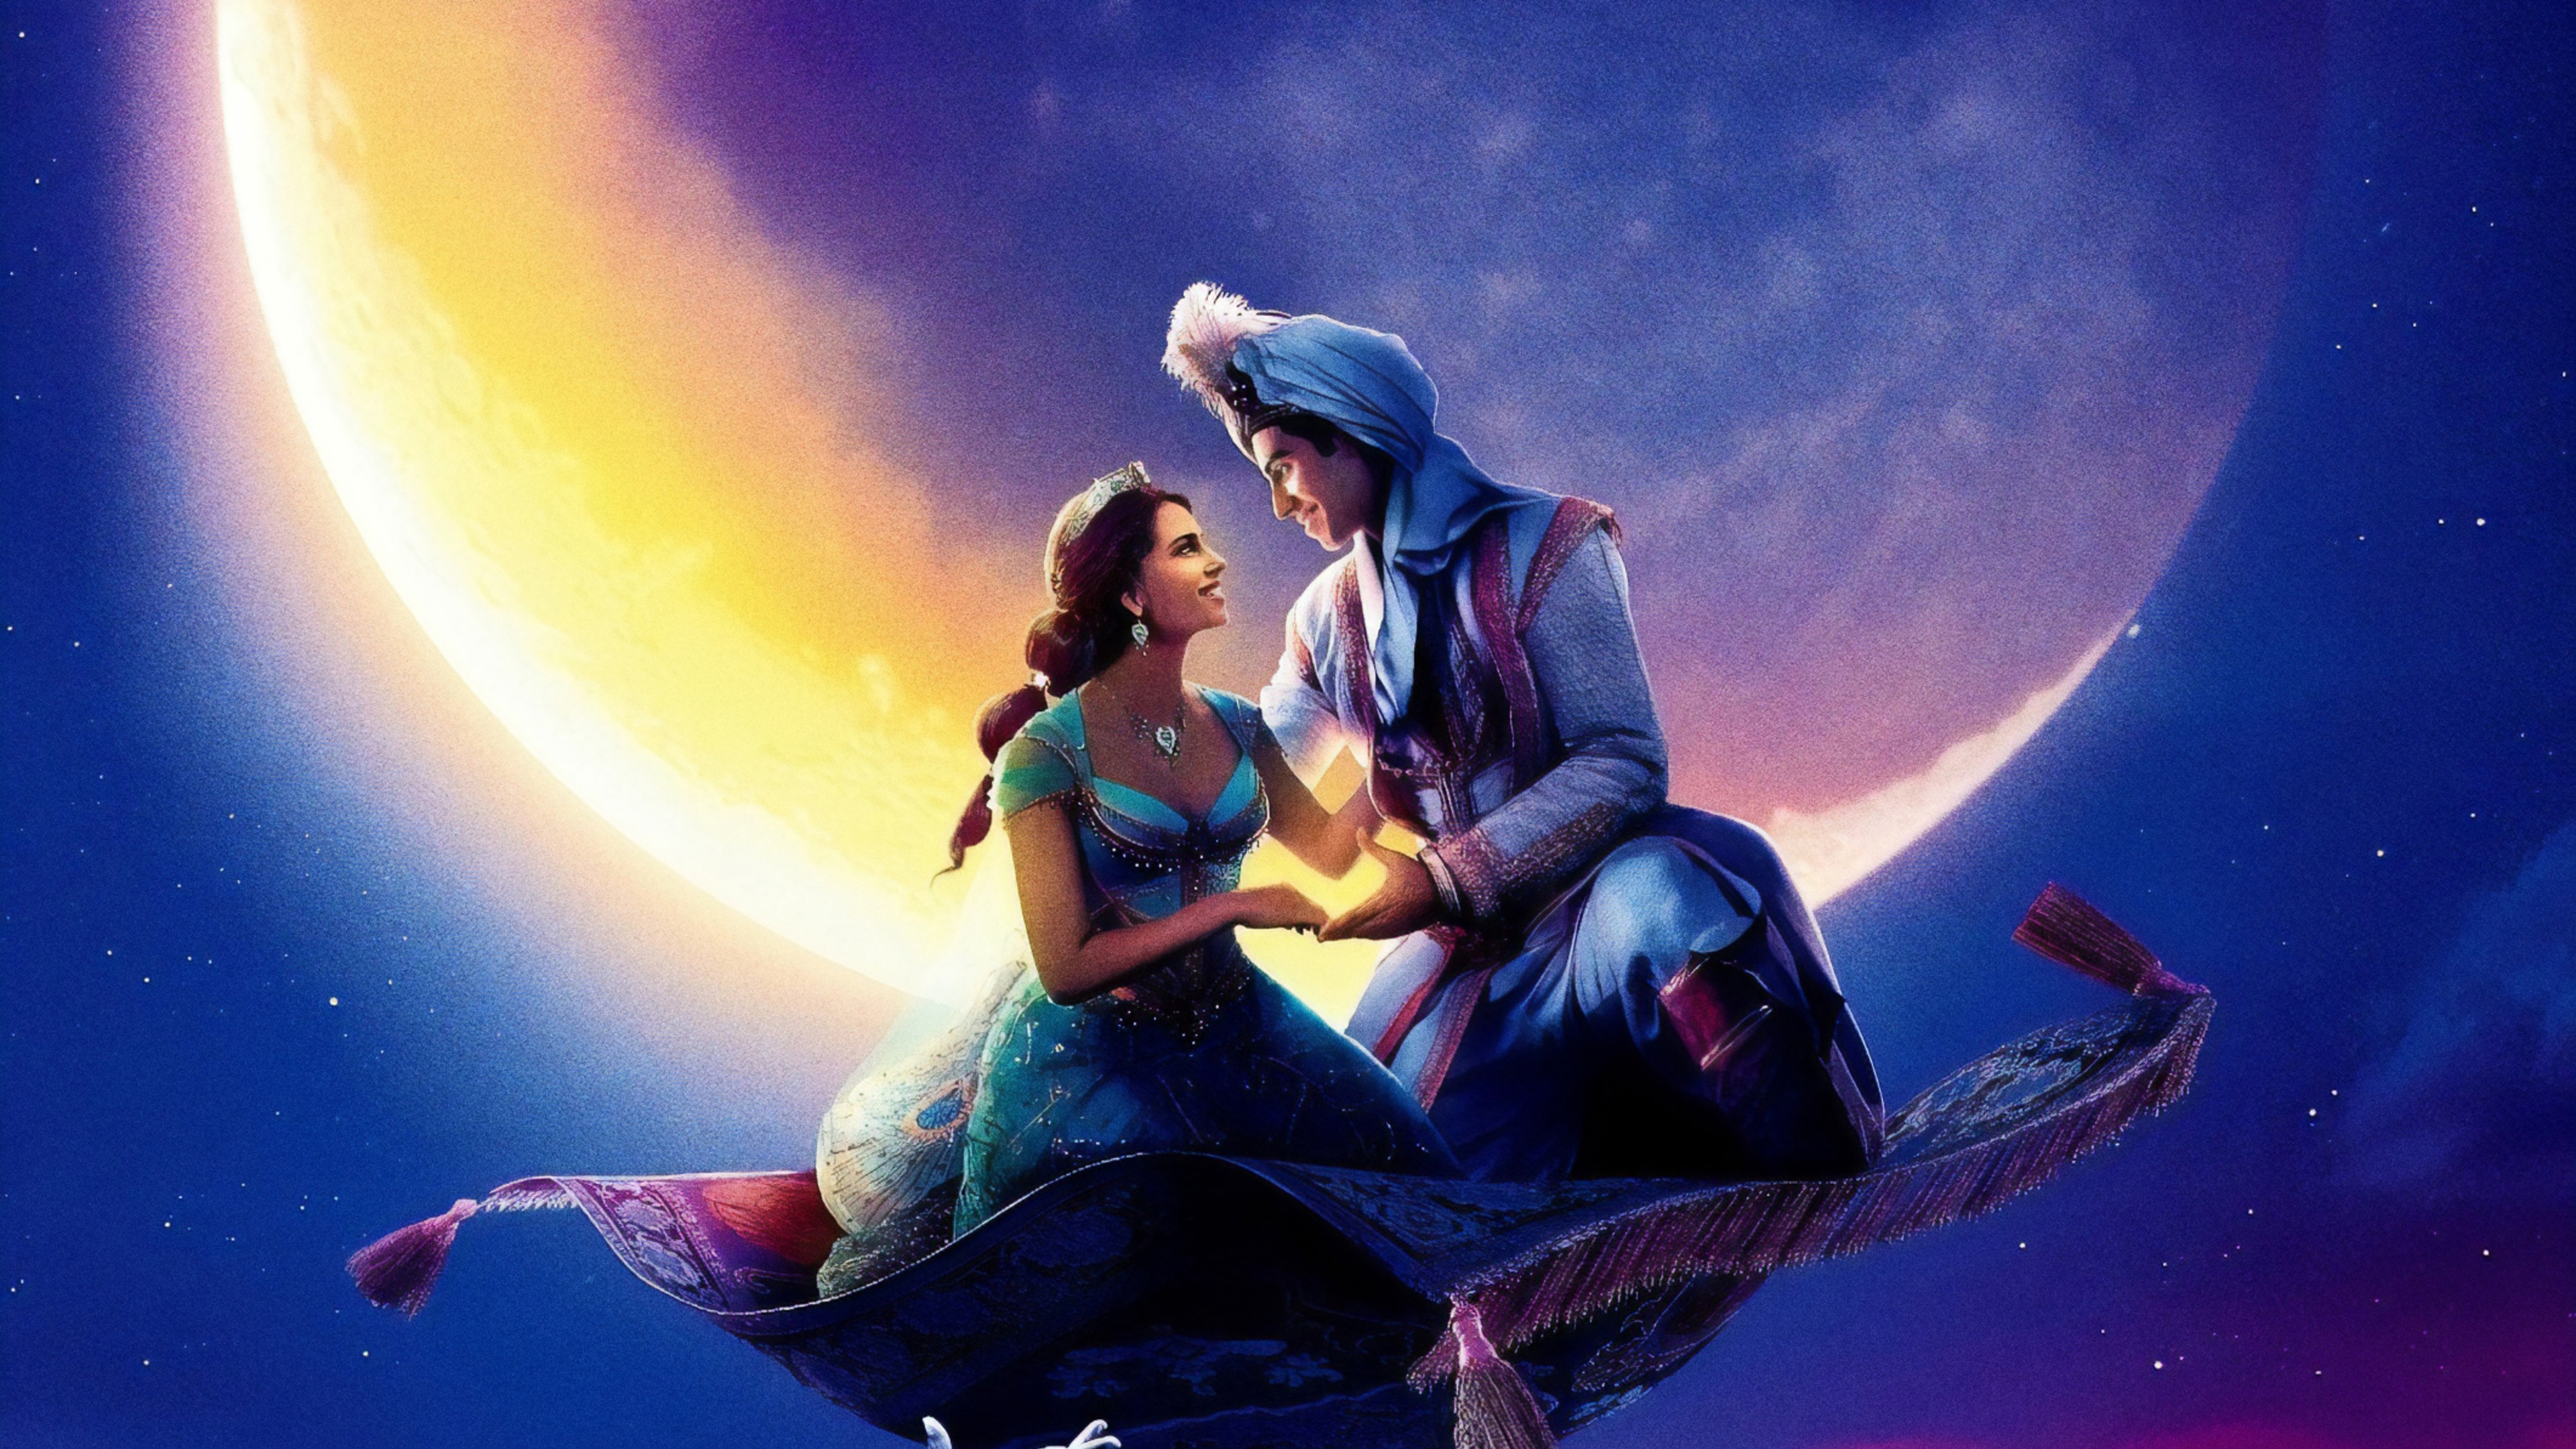 Movie Poster 2019: 3840x2160 Aladdin 2019 Movie Poster 4k HD 4k Wallpapers